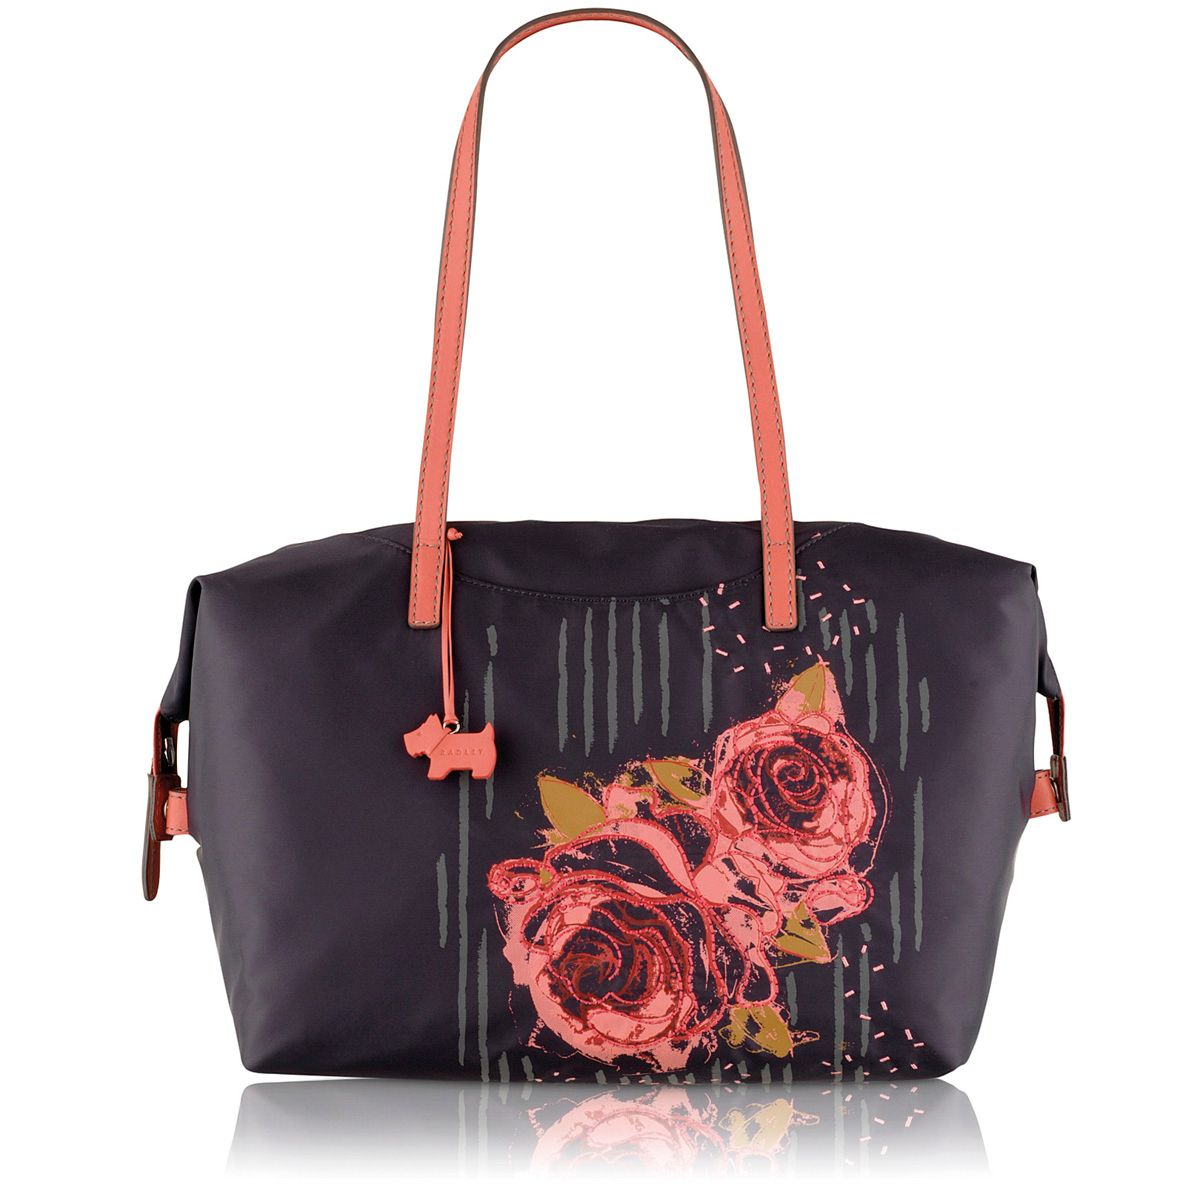 Purple medium tote bag